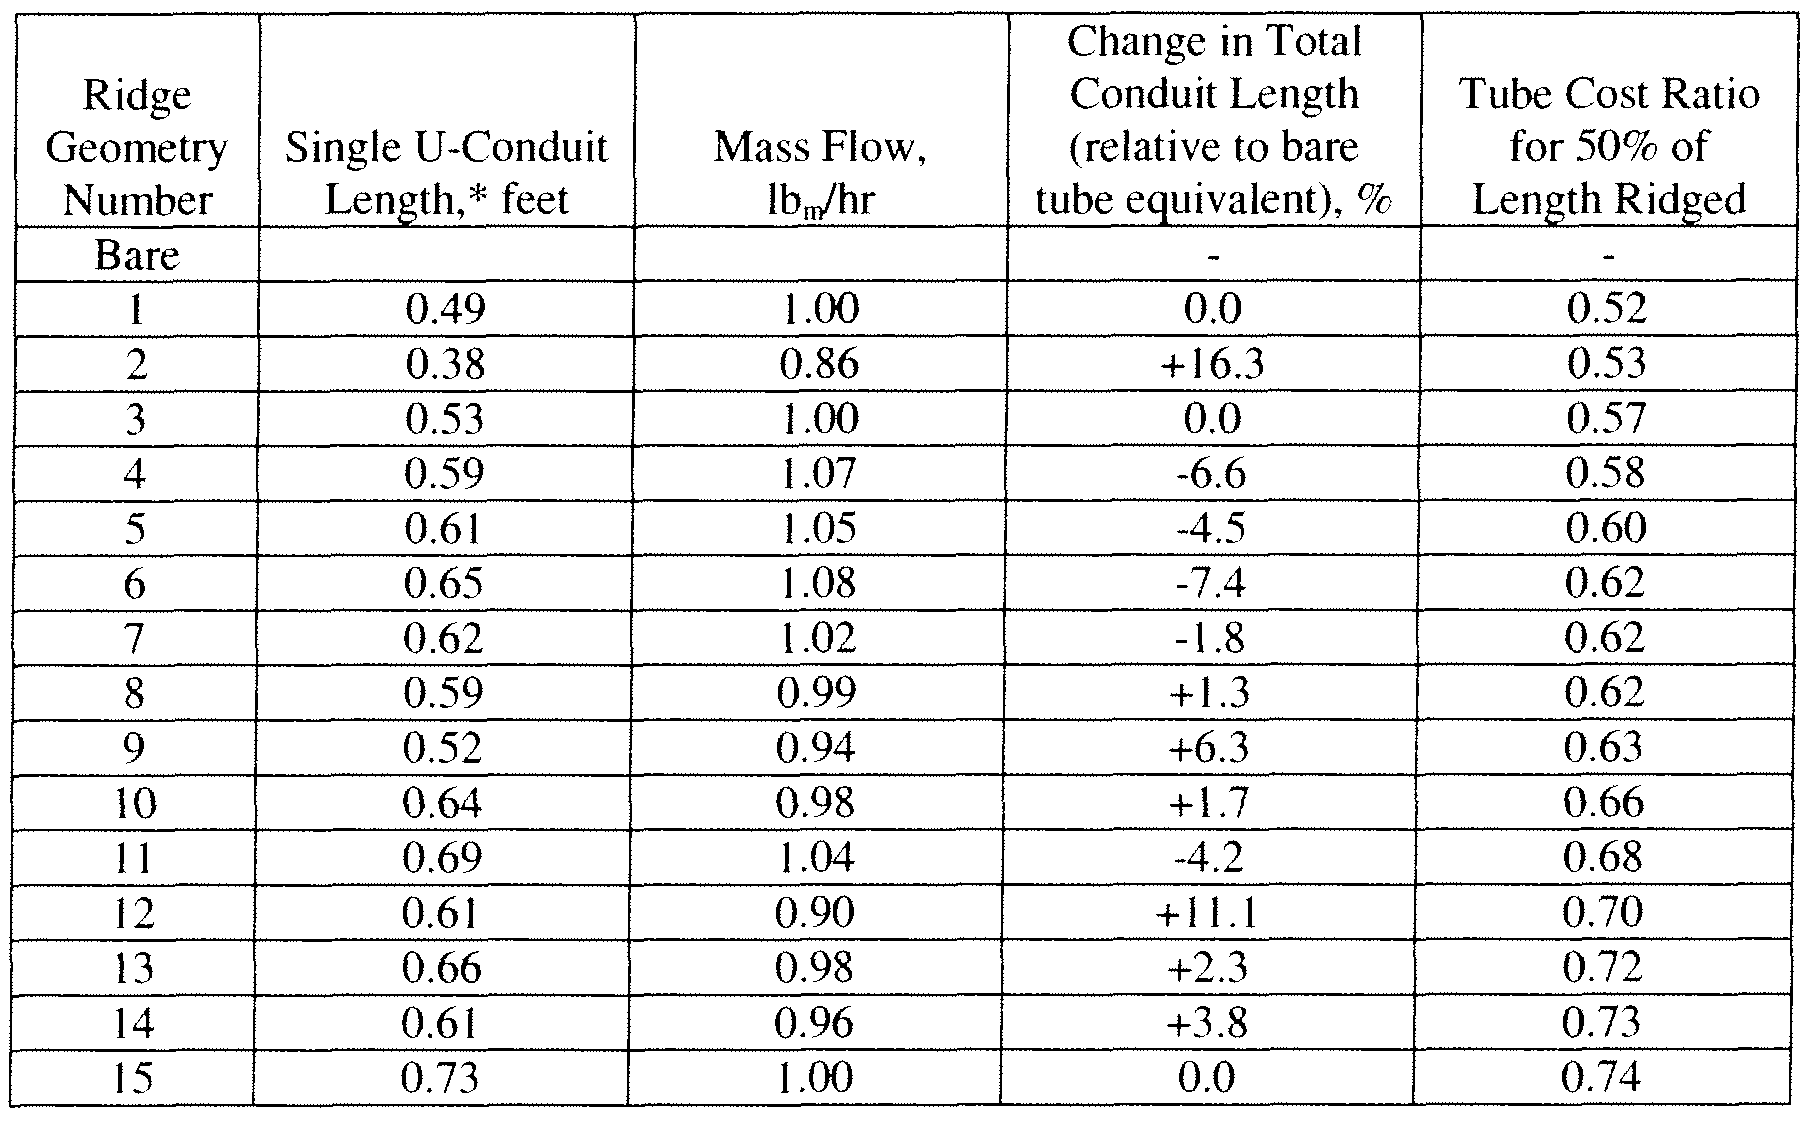 length of conduit relative to a bare conduit equivalent when